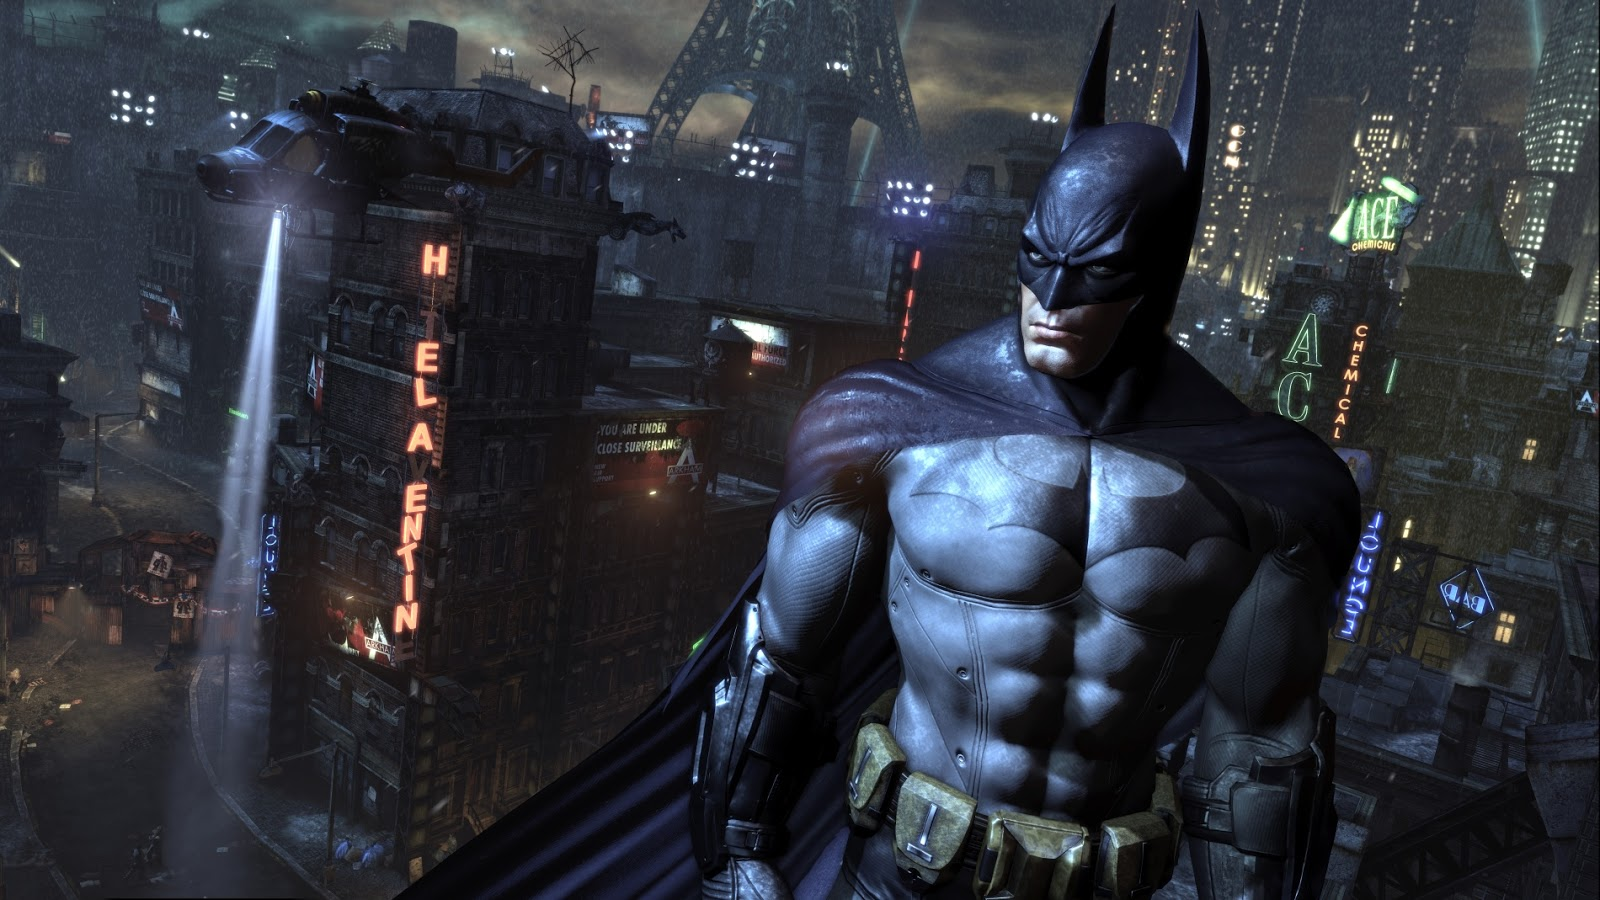 Intel Hd Graphics  Arkham City